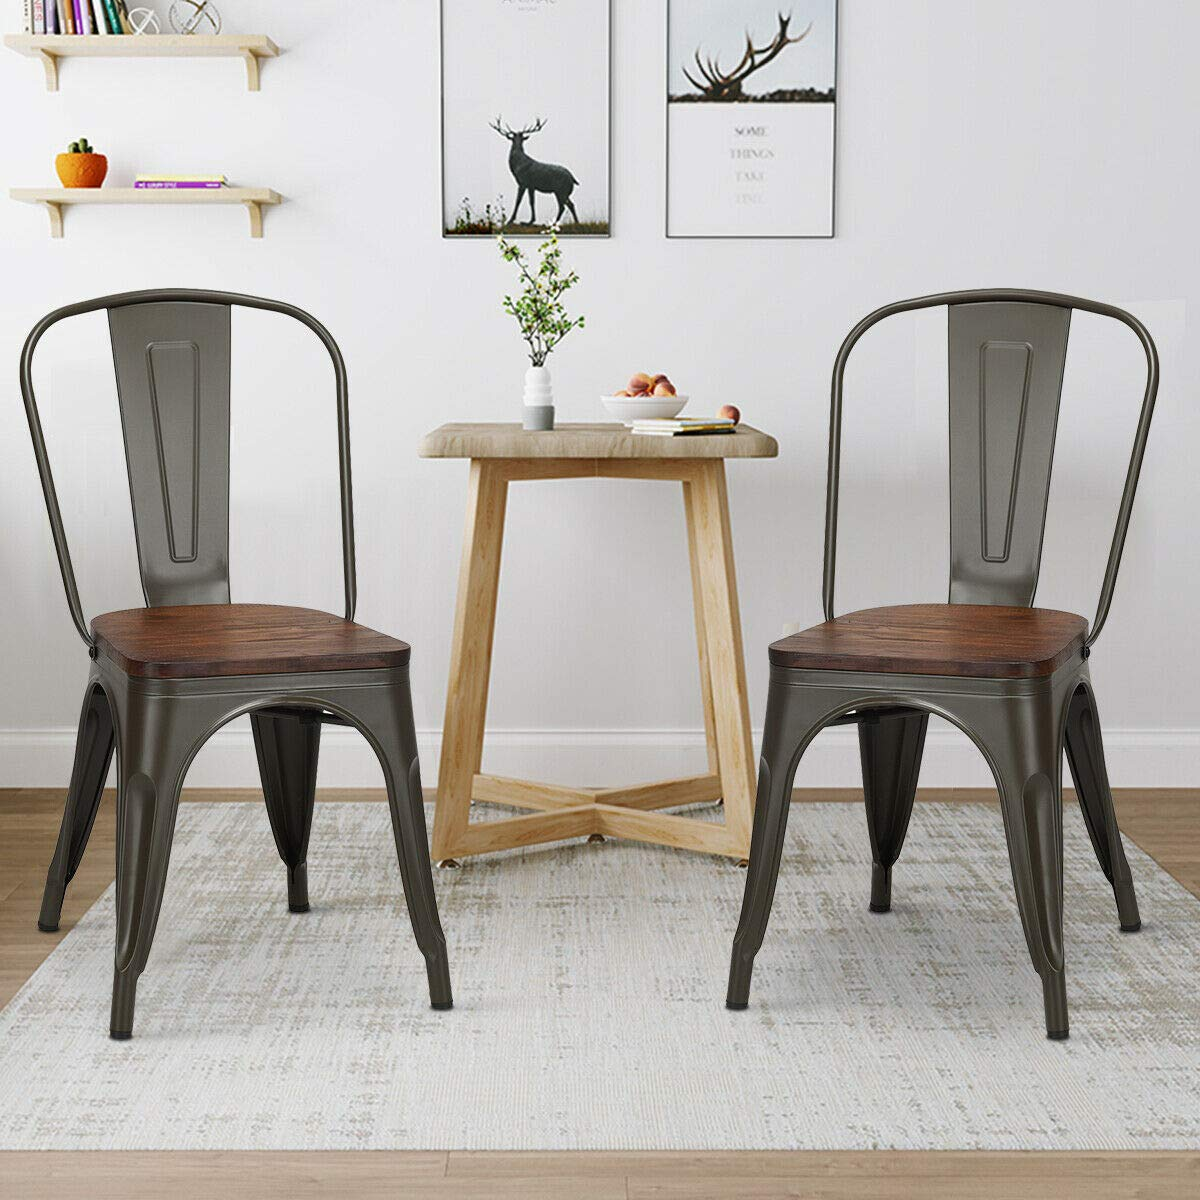 Industrial-Style-Metal-And-Wood-Kitchen-Chair-Tolix-Marais-Style